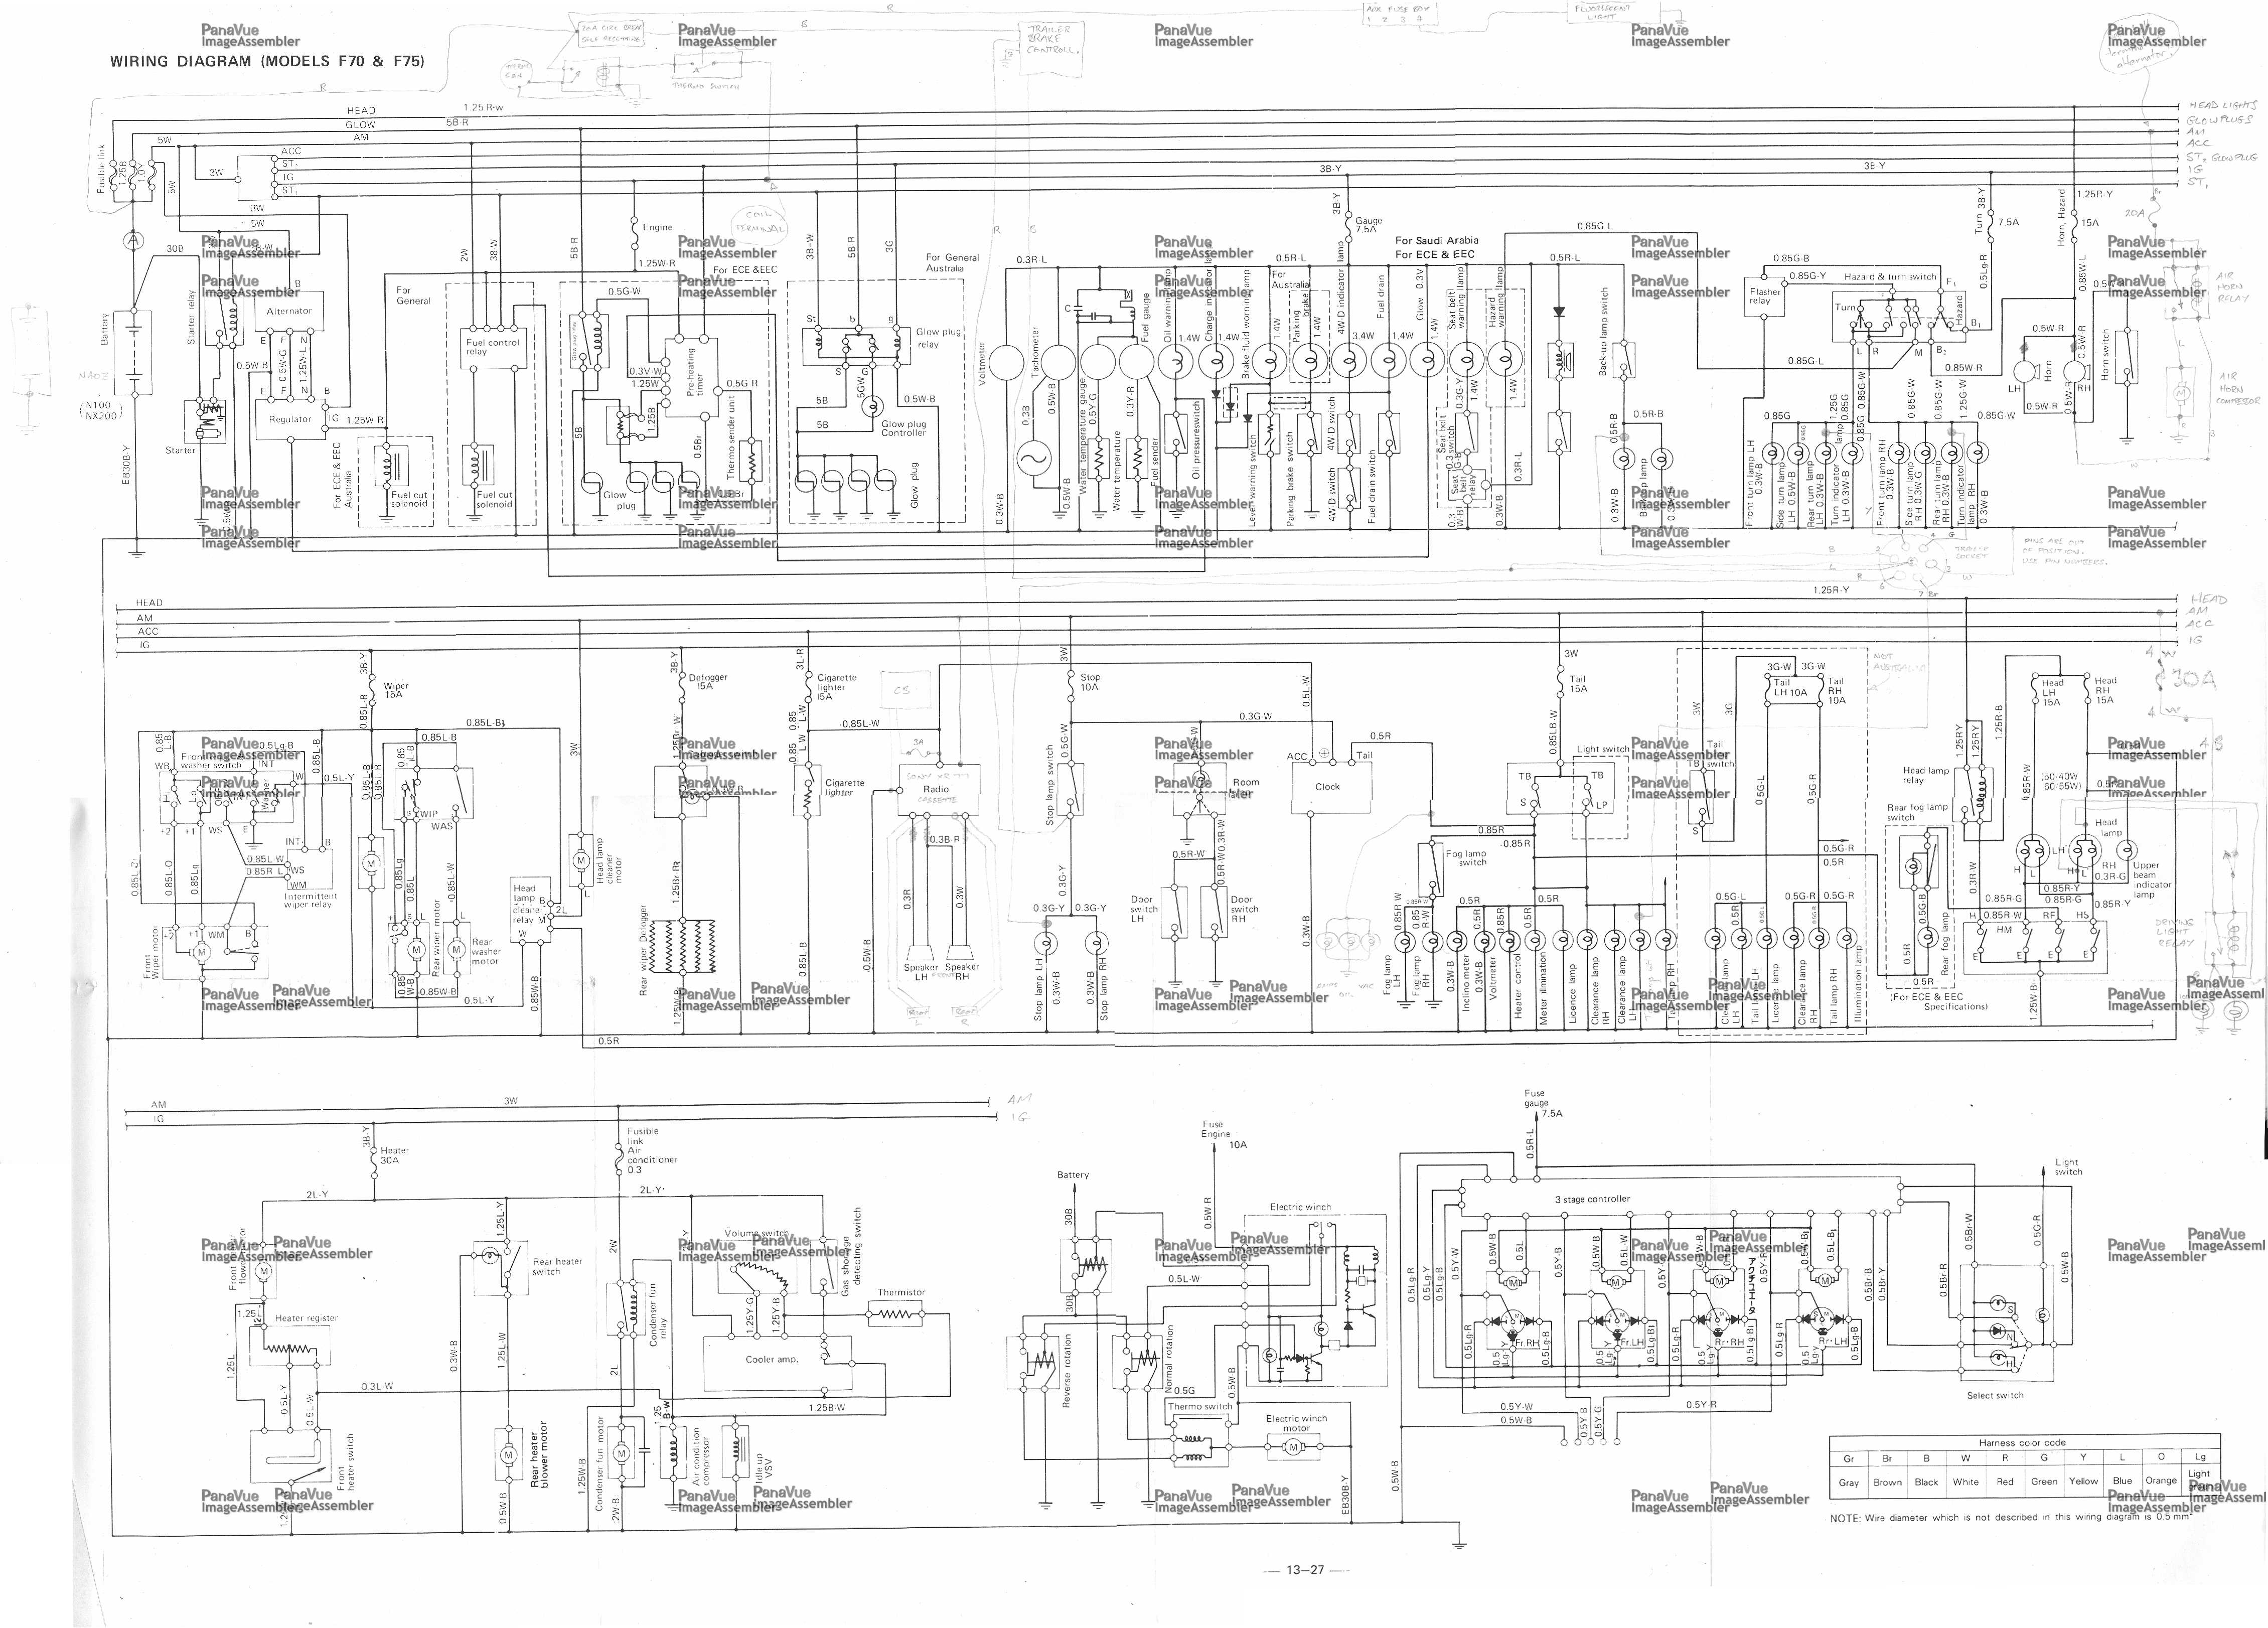 grumman llv wiring diagram explained wiring diagrams chevy ignition coil wiring diagram daihatsu applause wiring diagram trusted wiring diagram chevrolet llv grumman llv wiring diagram